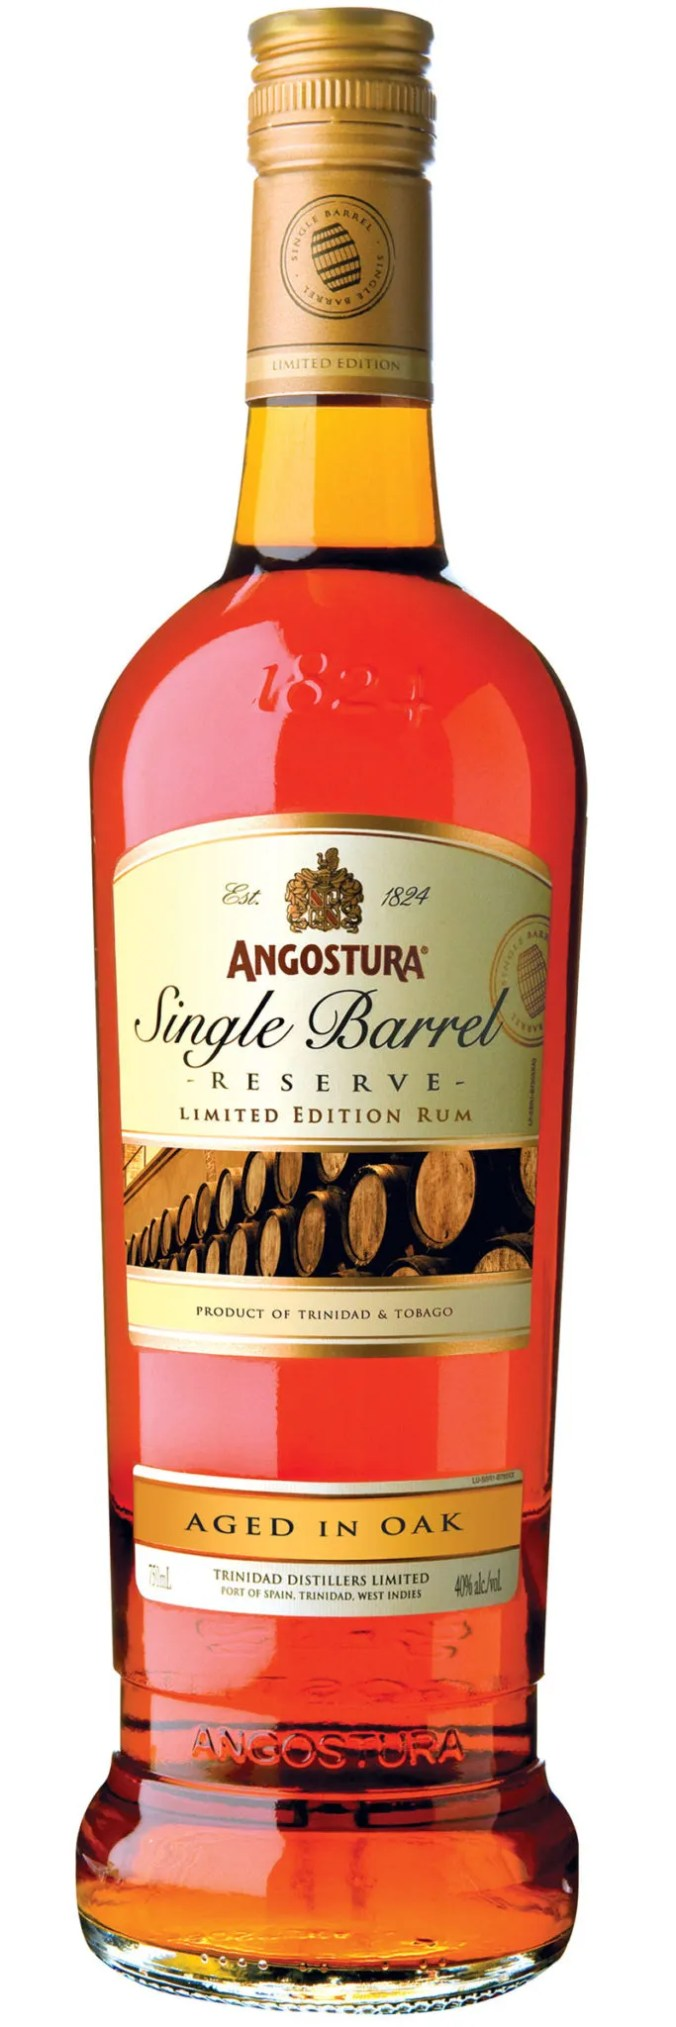 Angostura Single Barrel Reserve Image